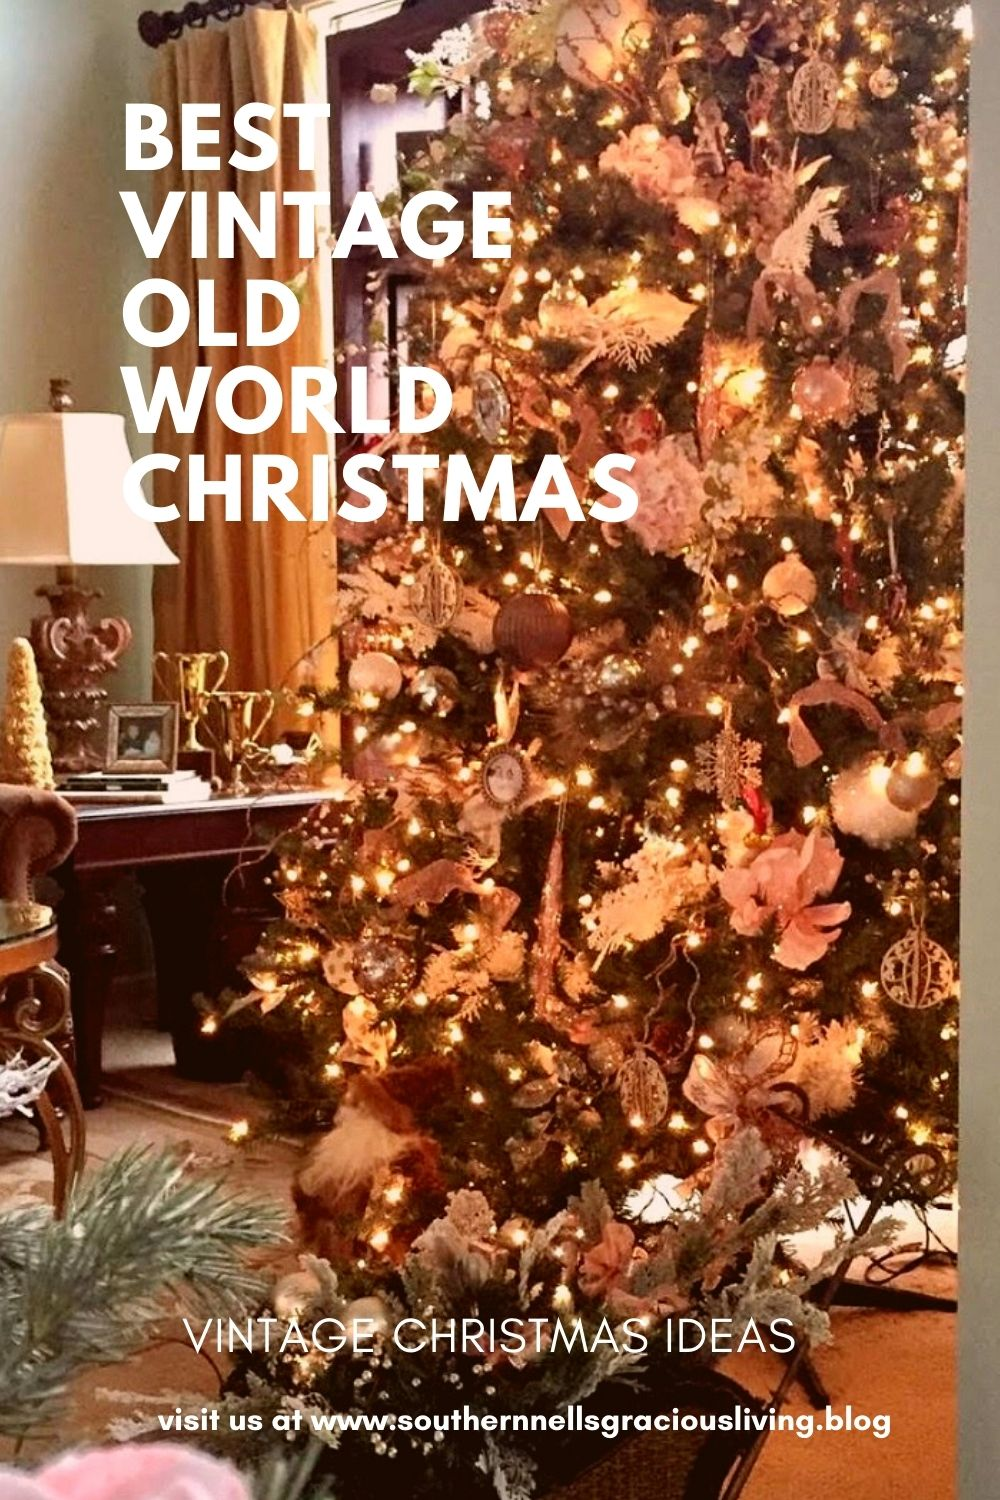 Ideas for Vintage Christmas